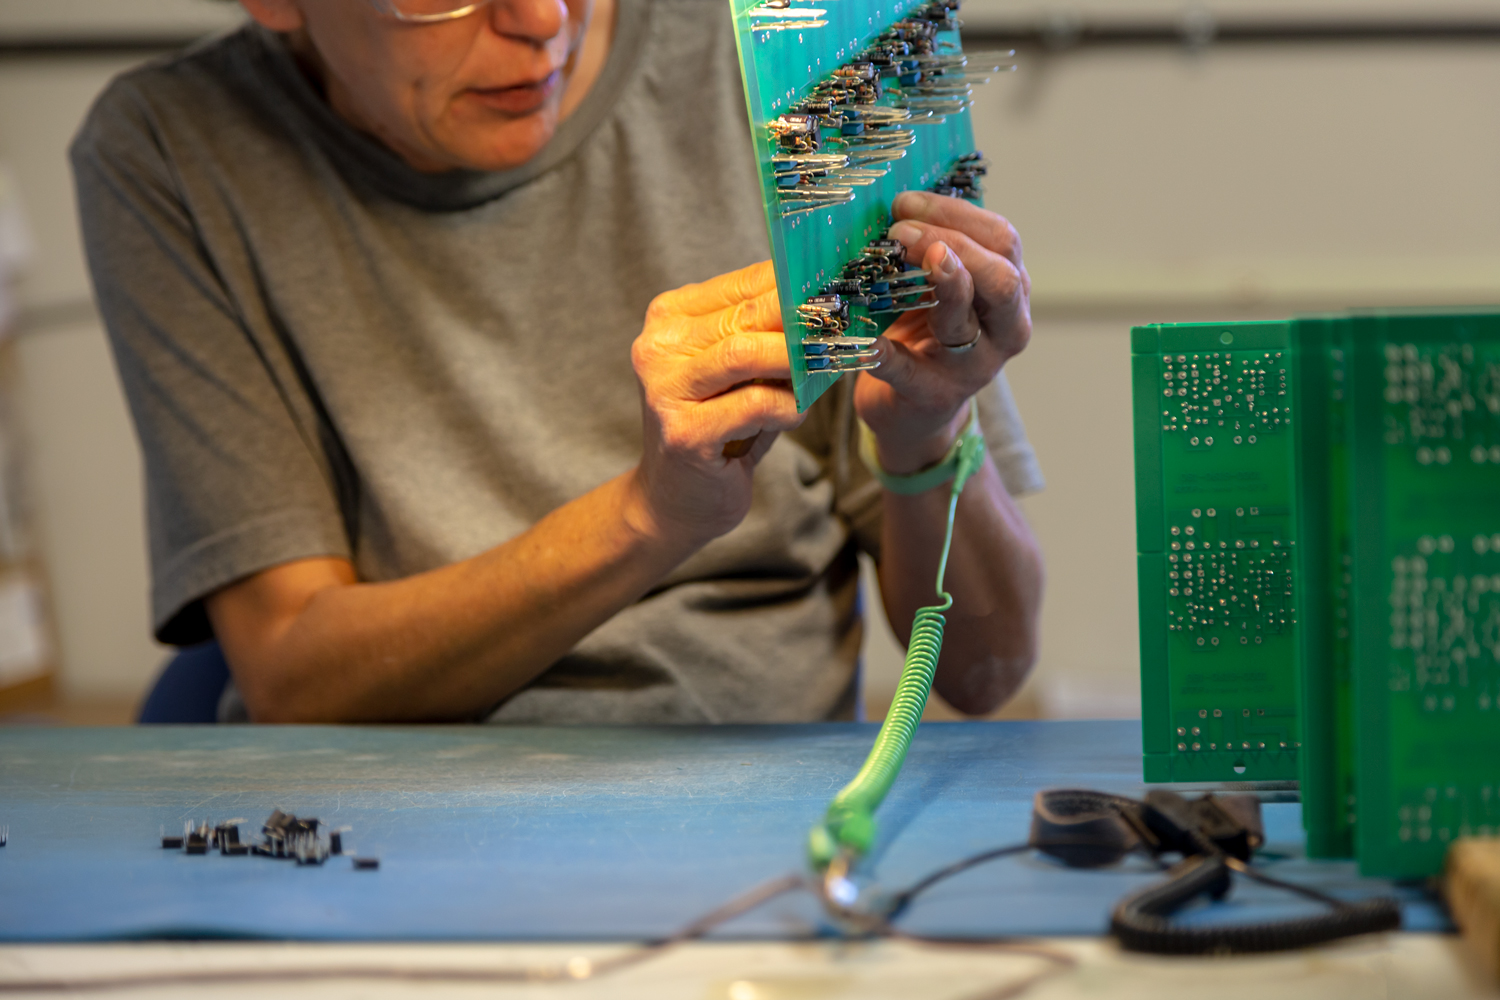 A worker carefully assembles a circuit board While wearing a grounding bracelet .